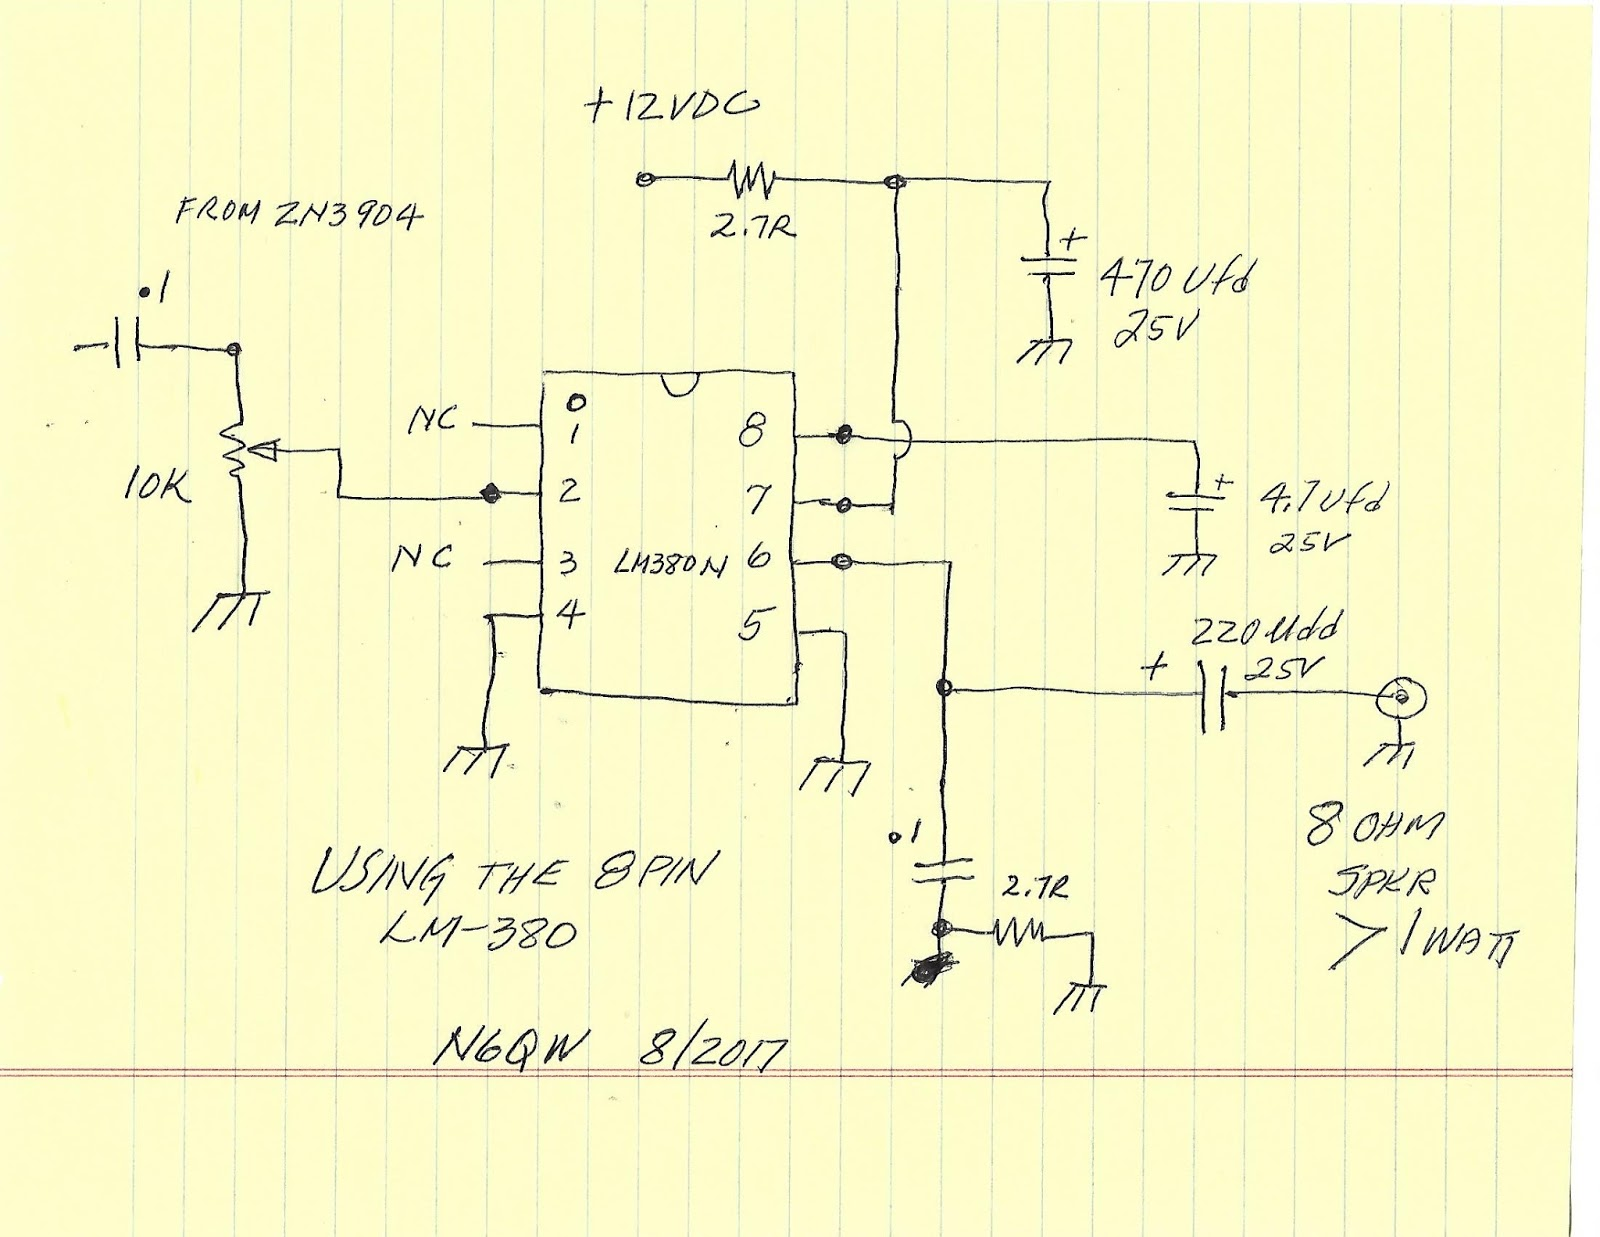 Simpleceiver Plus Circuit Was Constructed With The Use Of Power Audio Amplifier Lm380 There Are No Changes To 2n3904 And Output Is Simply Fed Into Pin 2works Pretty Nicely In Excess 1 Watt